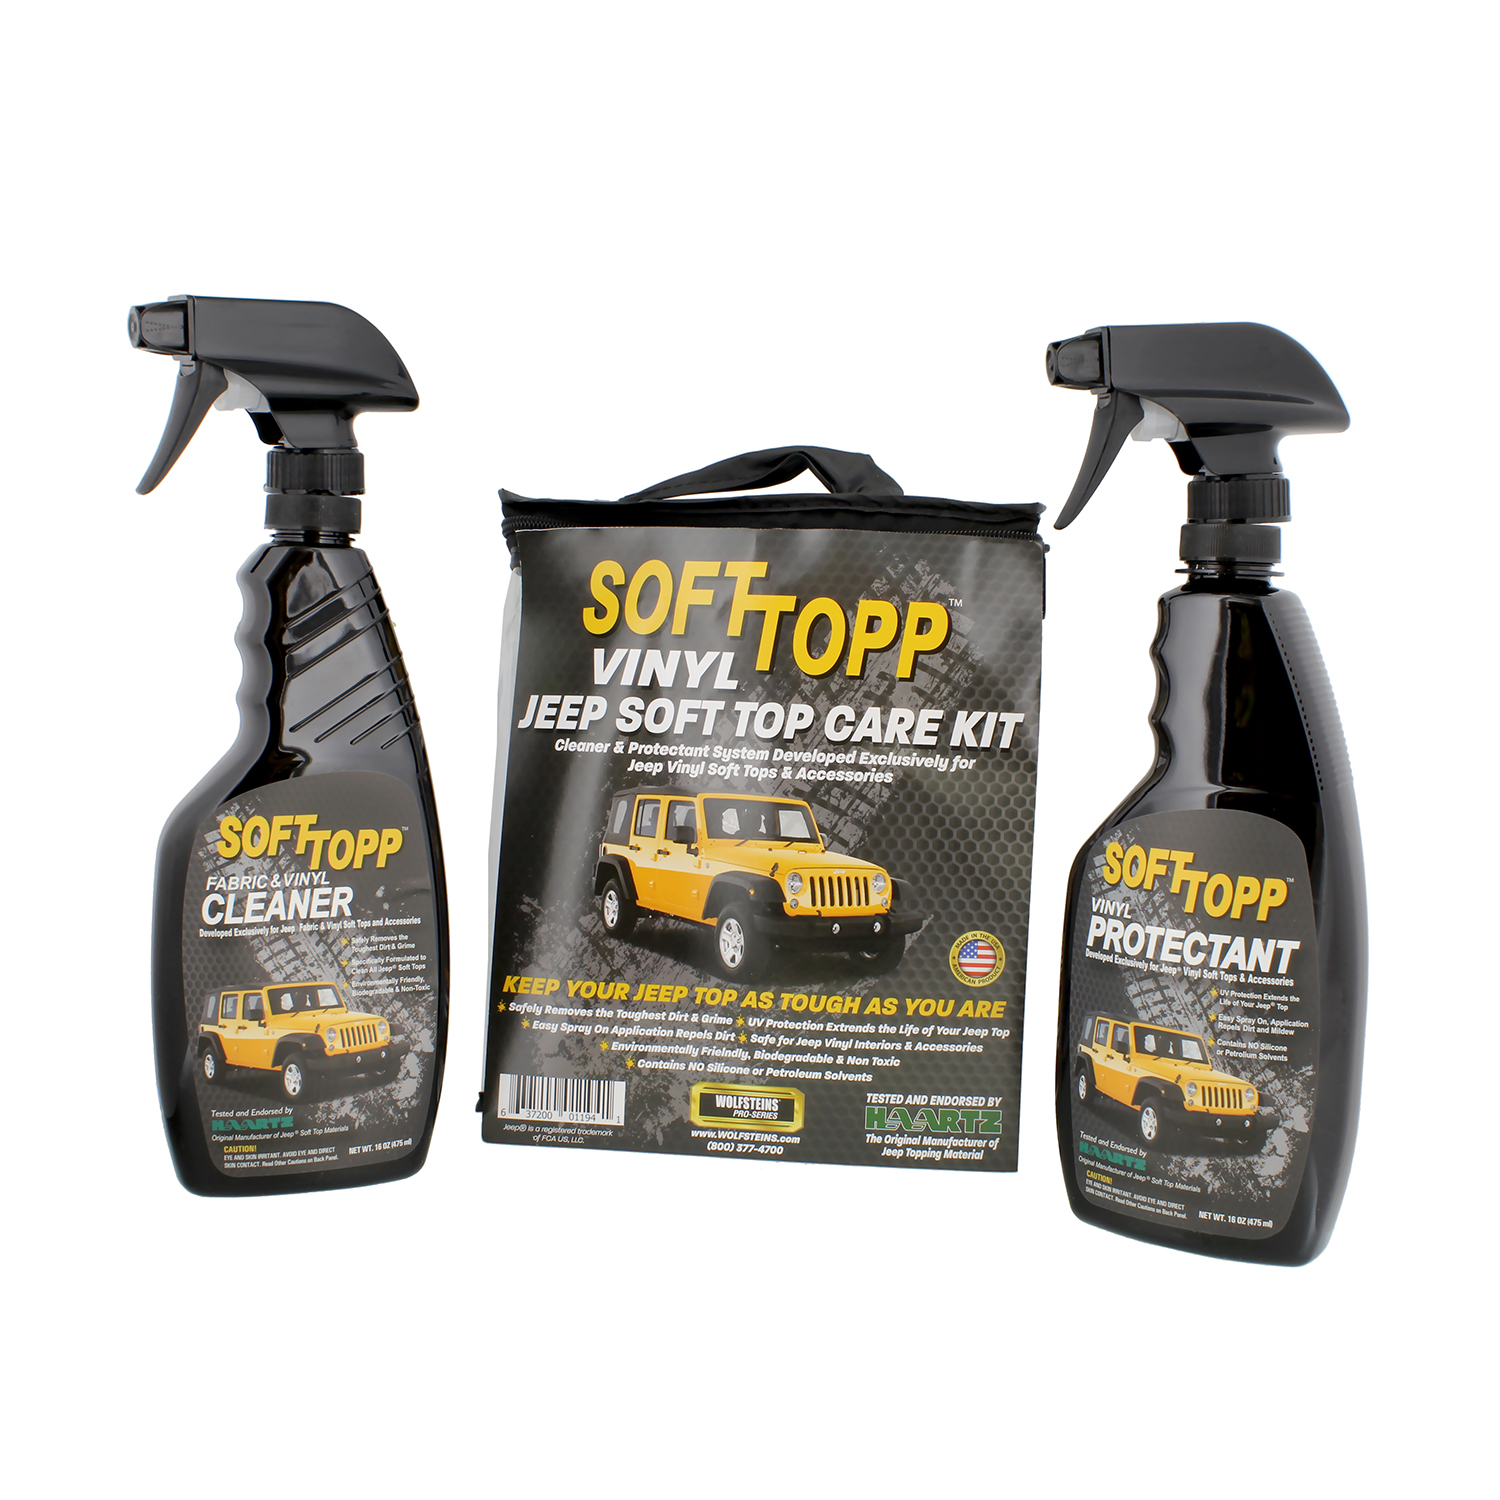 RaggTopp 1194 SoftTop Jeep Top Vinyl Top Cleaner & Protectant Kit - Pack of 2